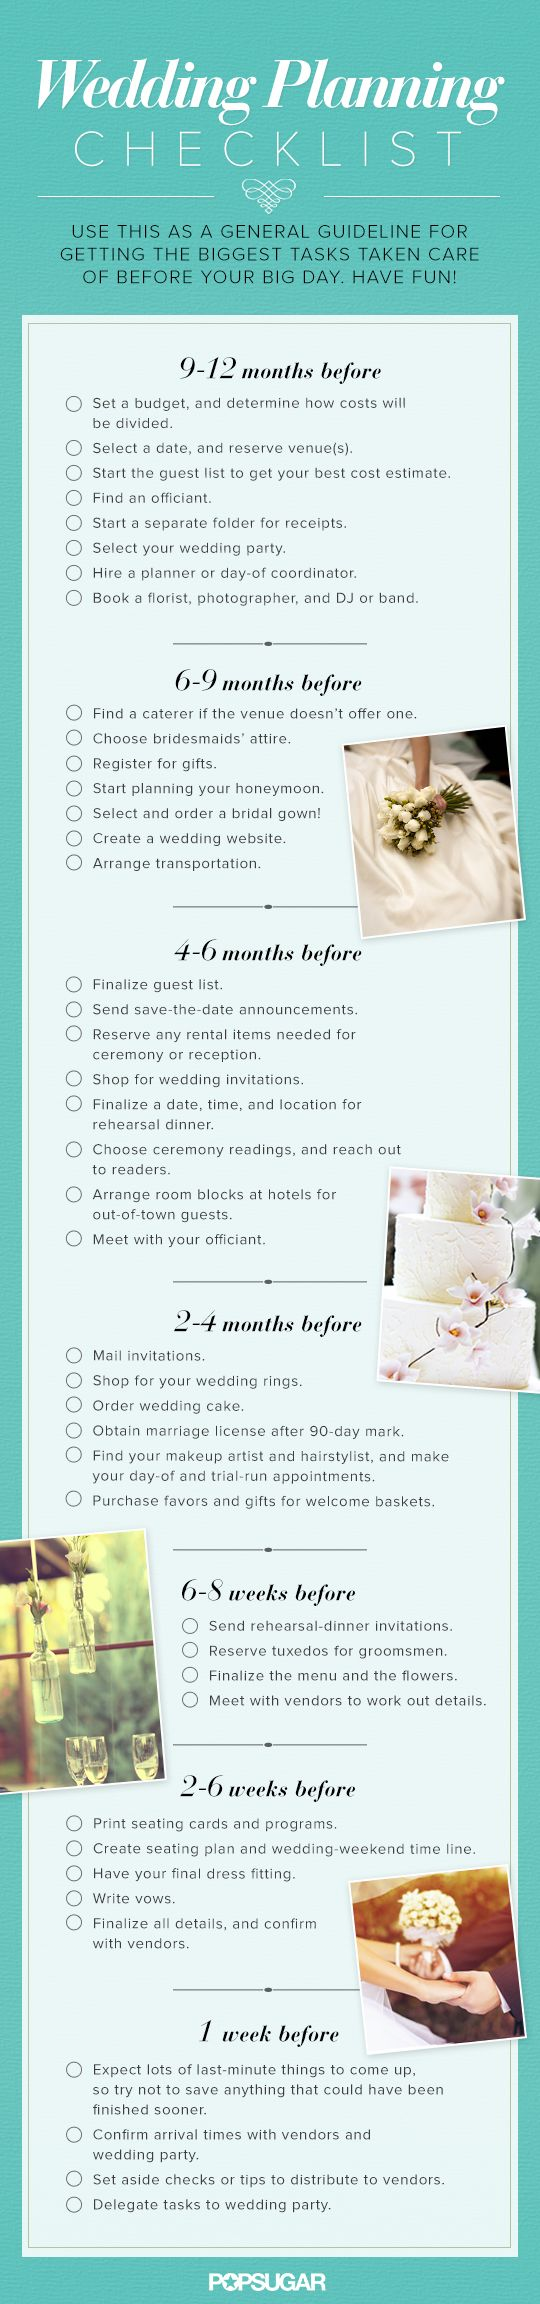 Top 5 Wedding Planning Checklists To Keep You On Track - MODwedding